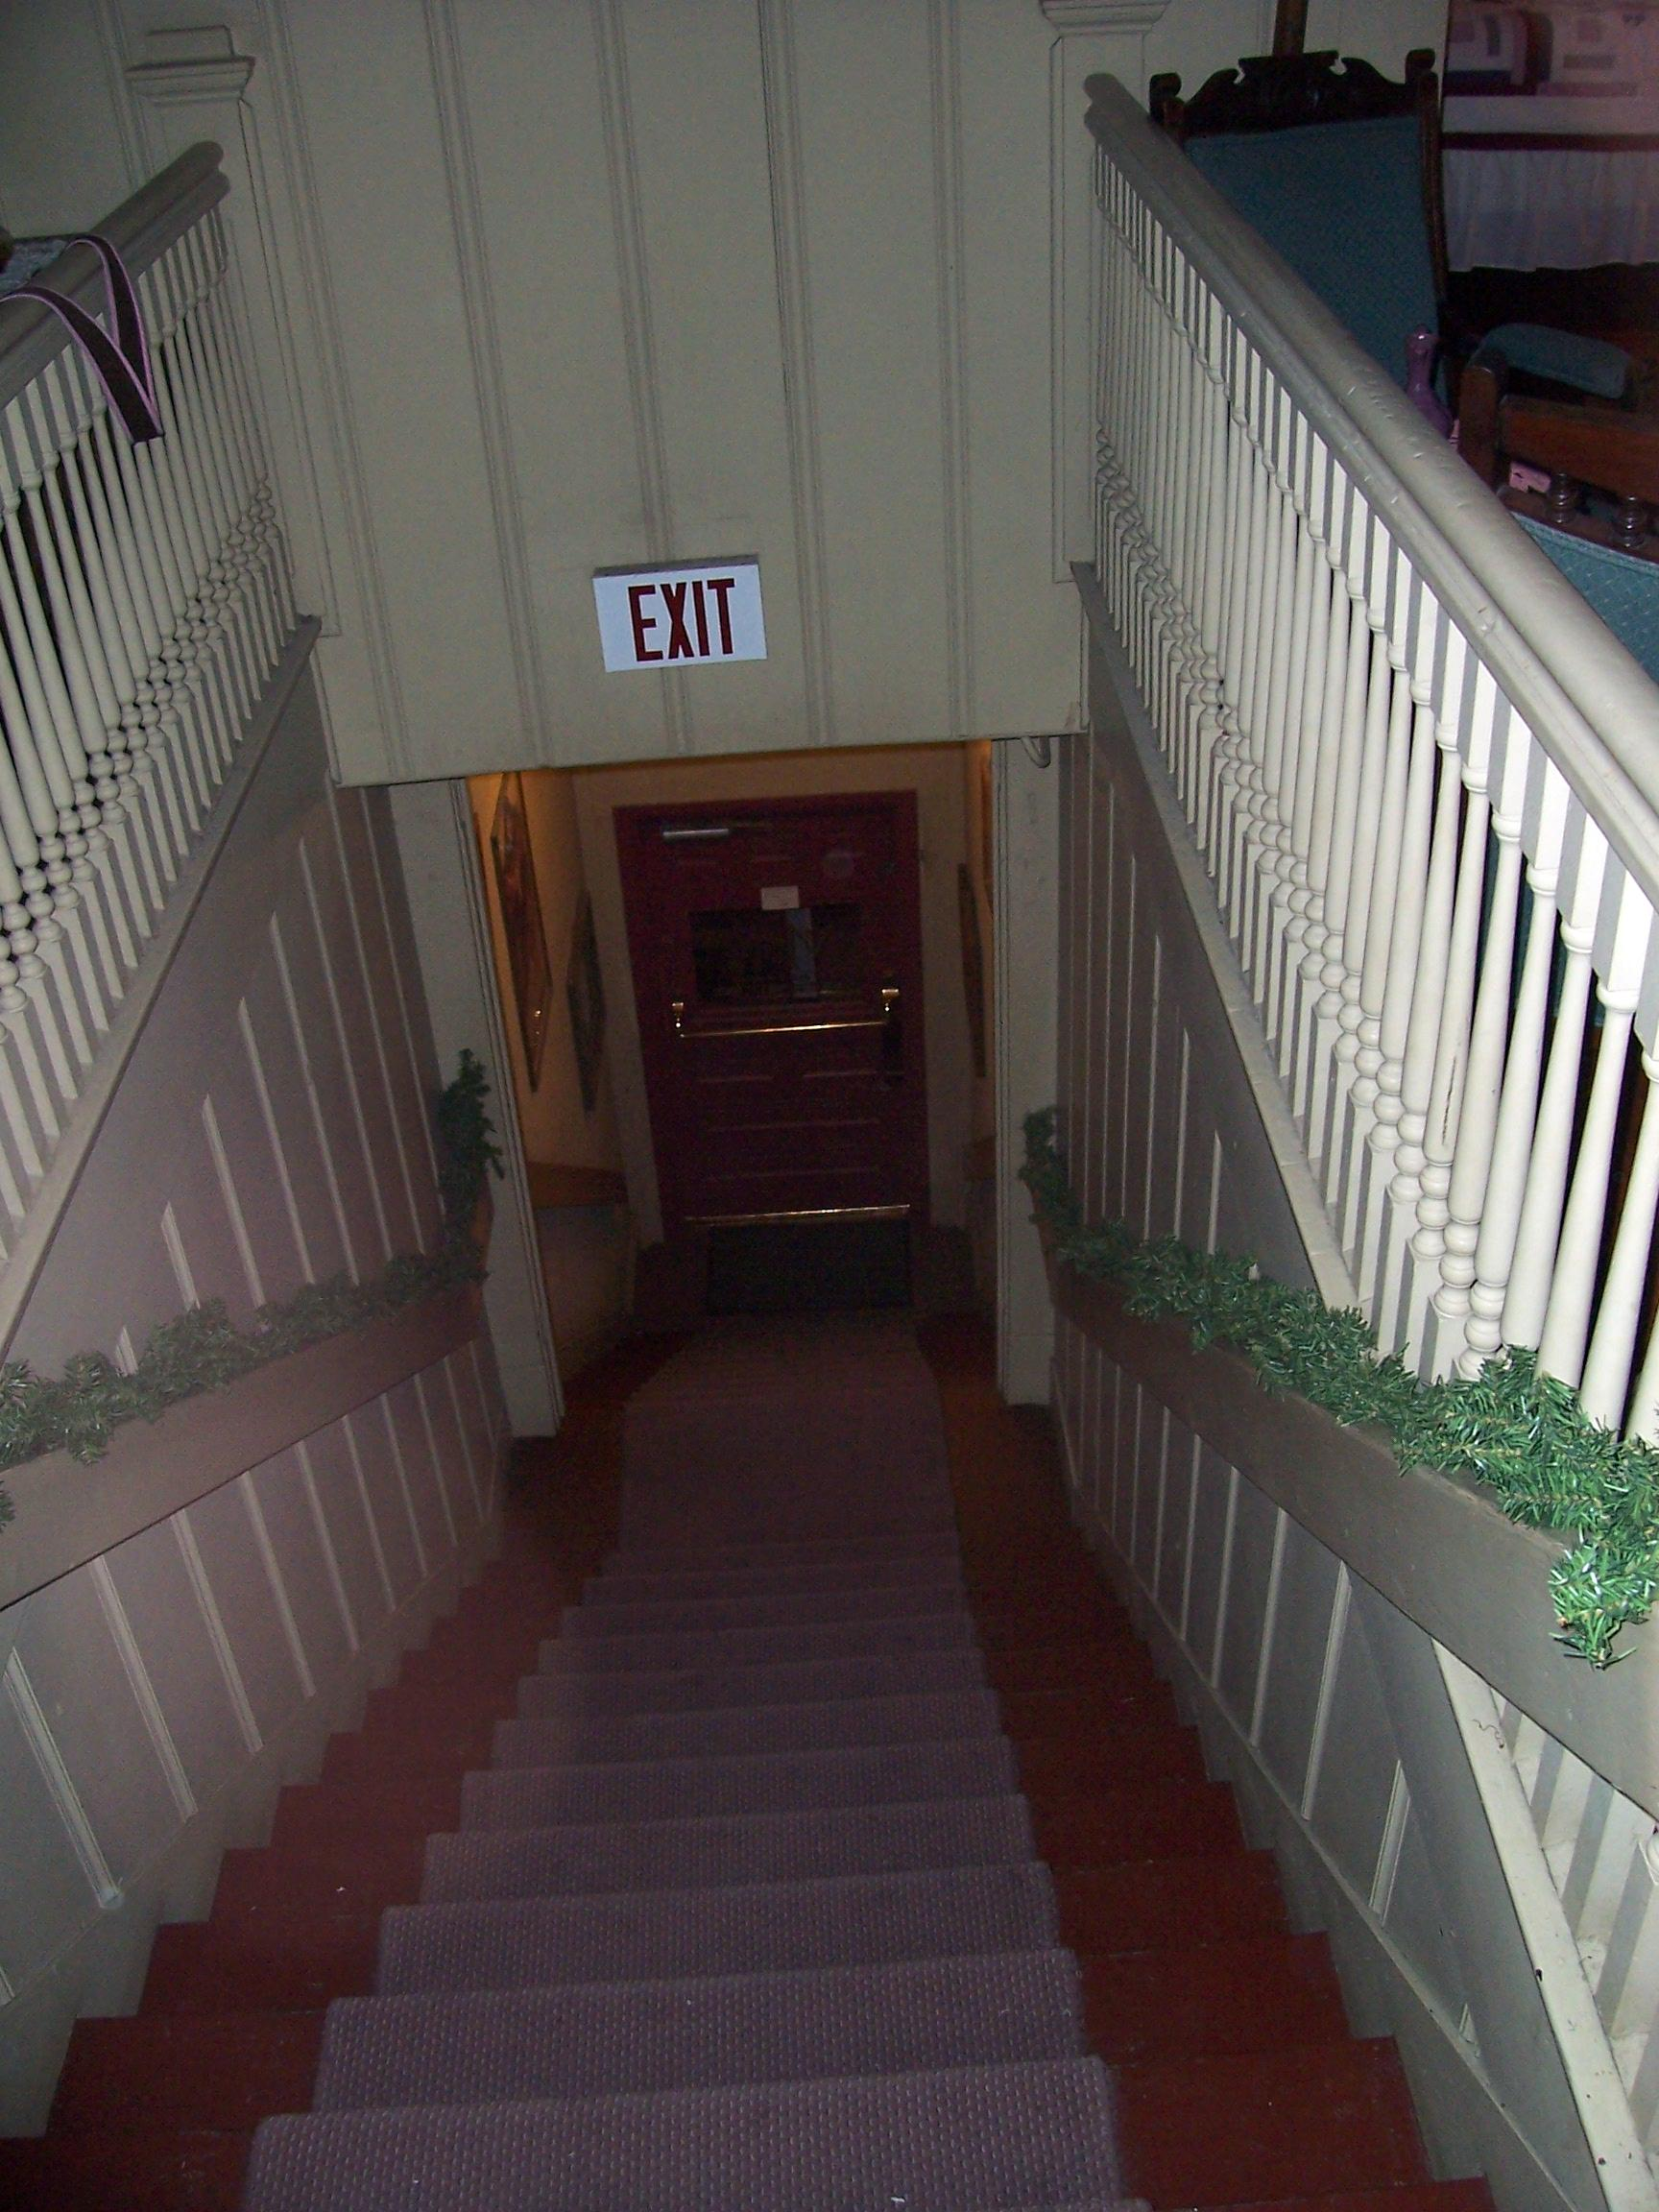 The front stair view from the top